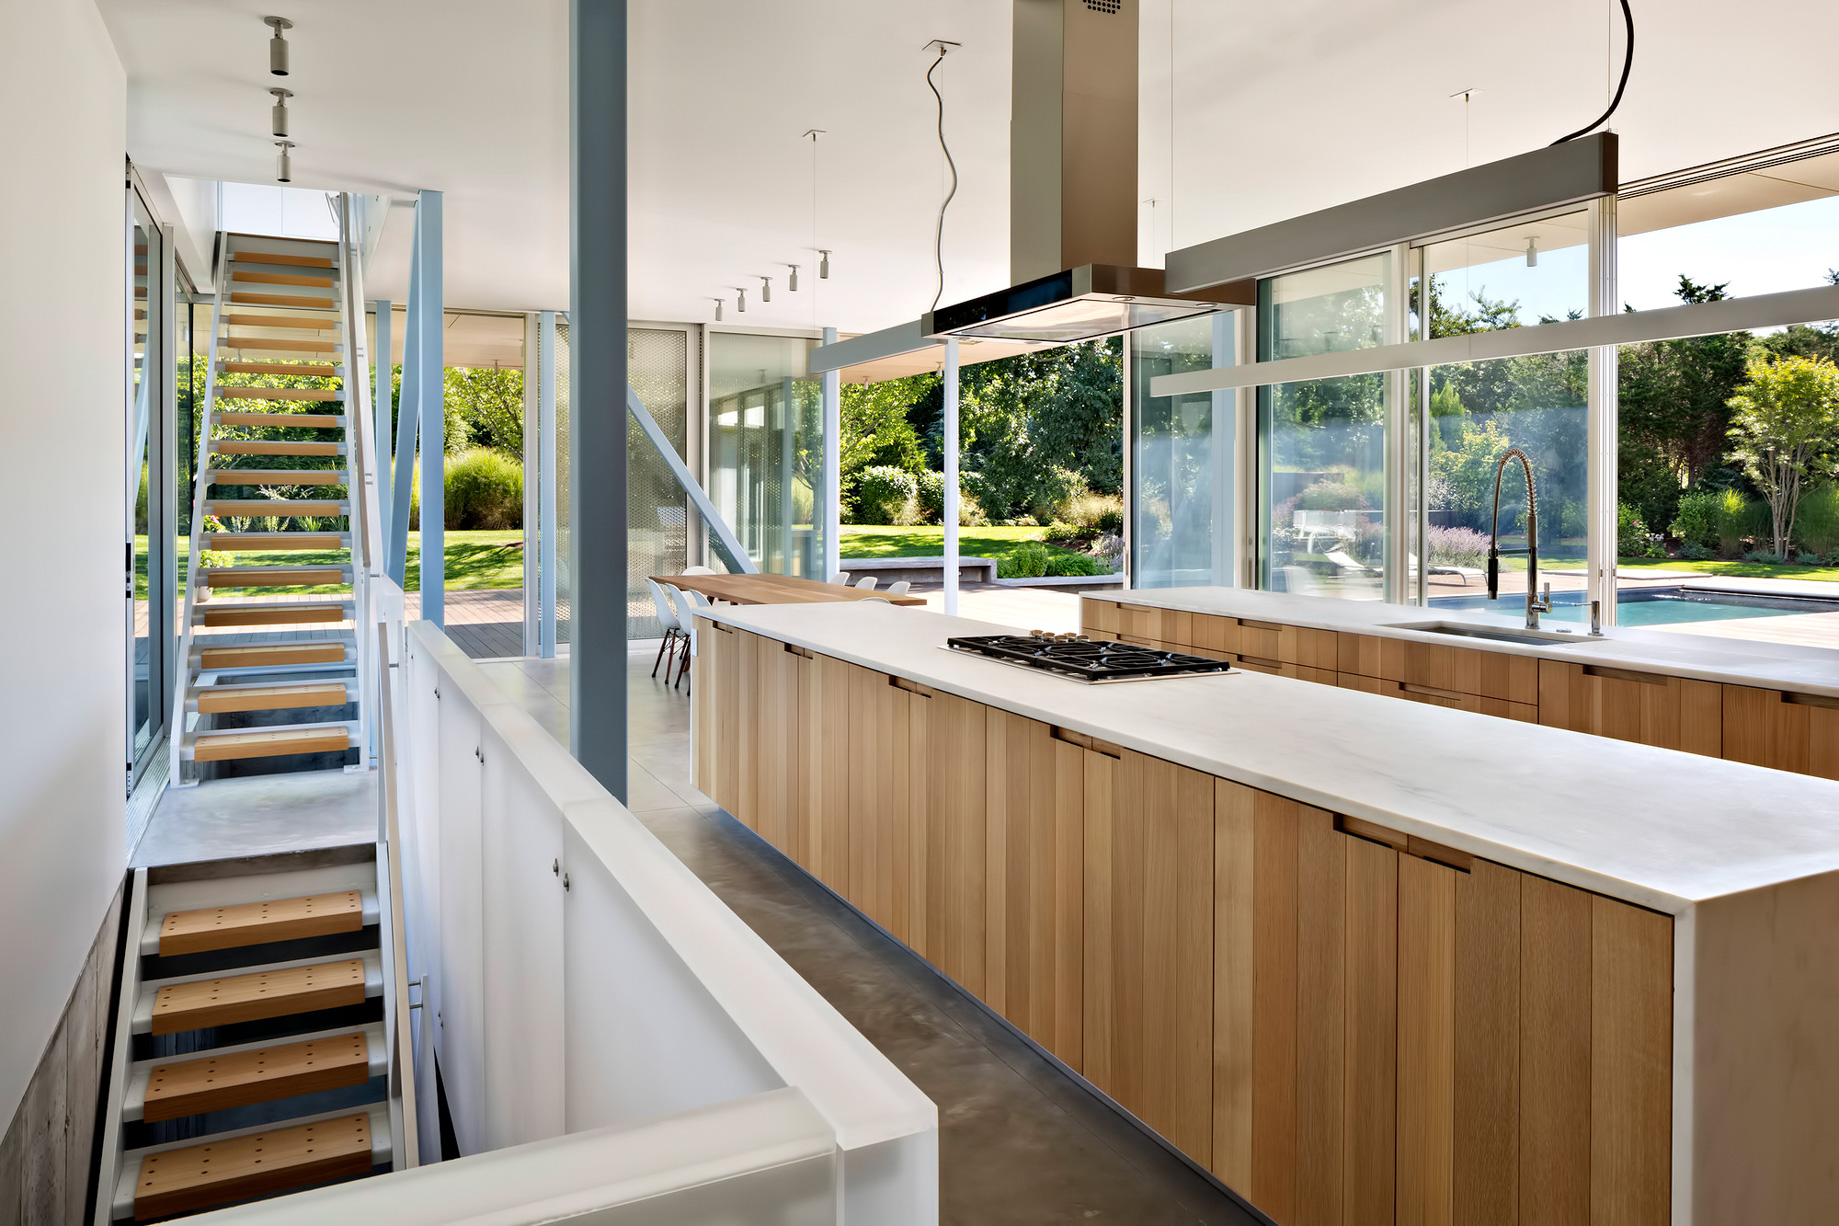 Amagansett Beach House – St Marys Ln, East Hampton, NY, USA